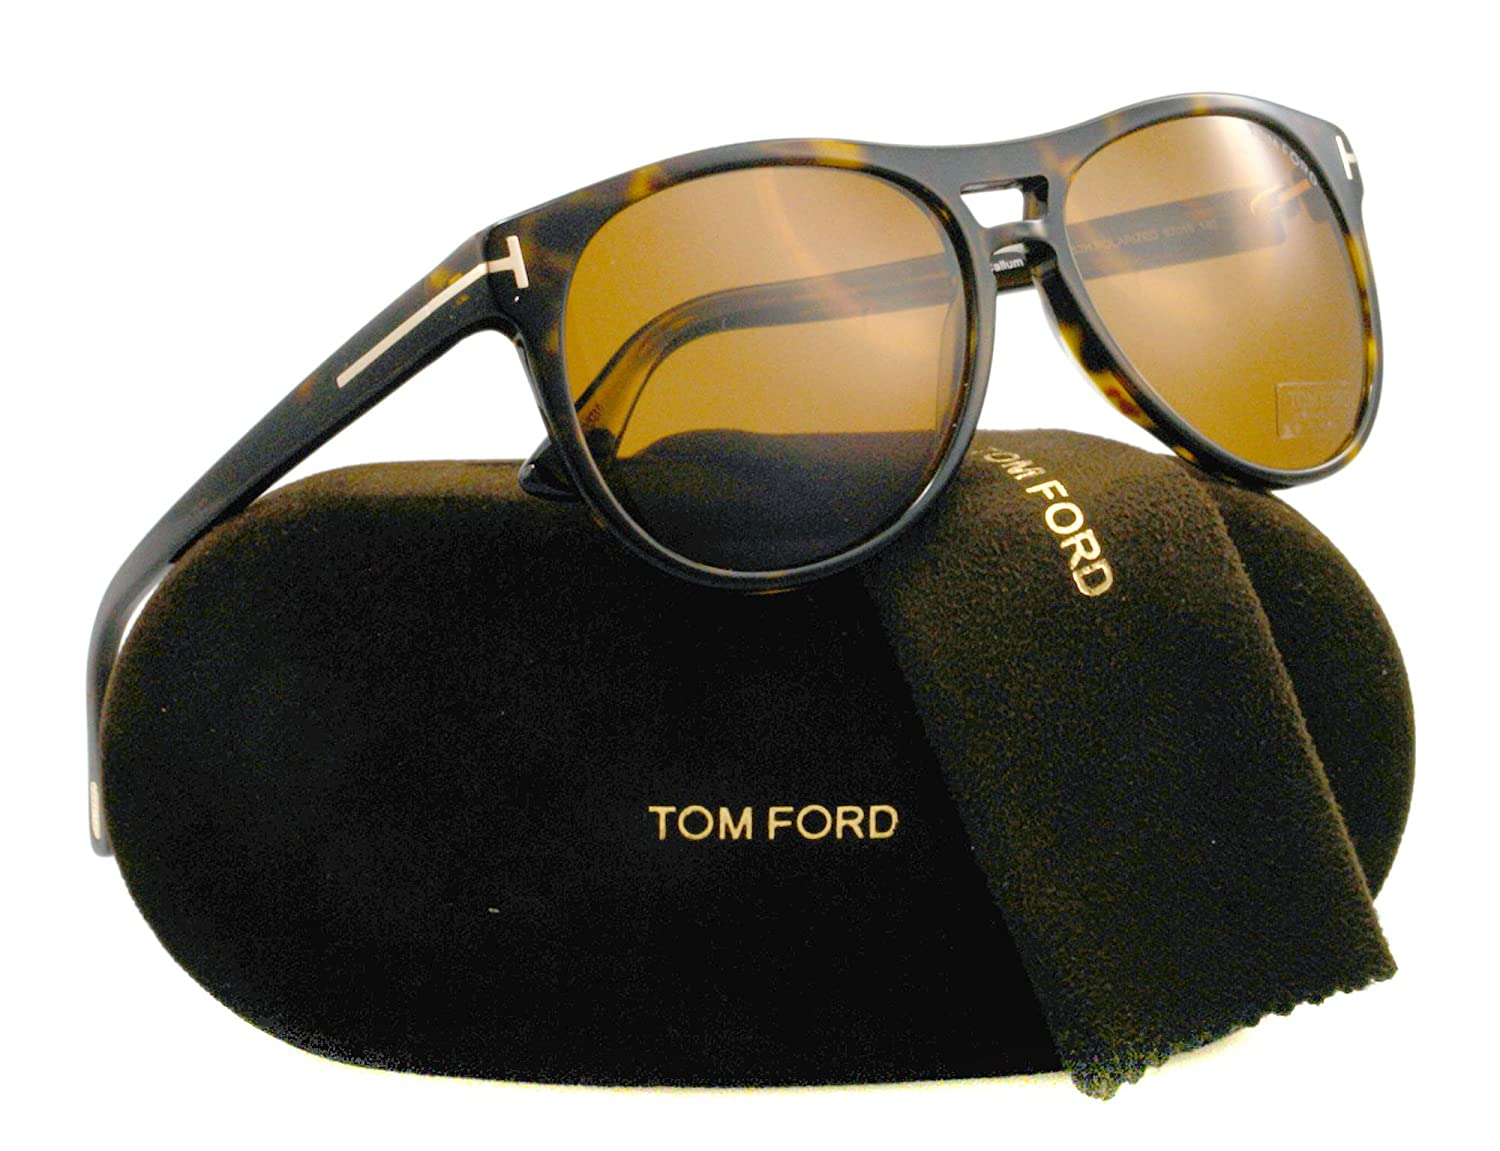 0f8fd2b377 Amazon.com  Tom Ford Sunglasses - Callum   Frame  Dark Havana Lens  Brown  Polarized  Tom Ford  Shoes